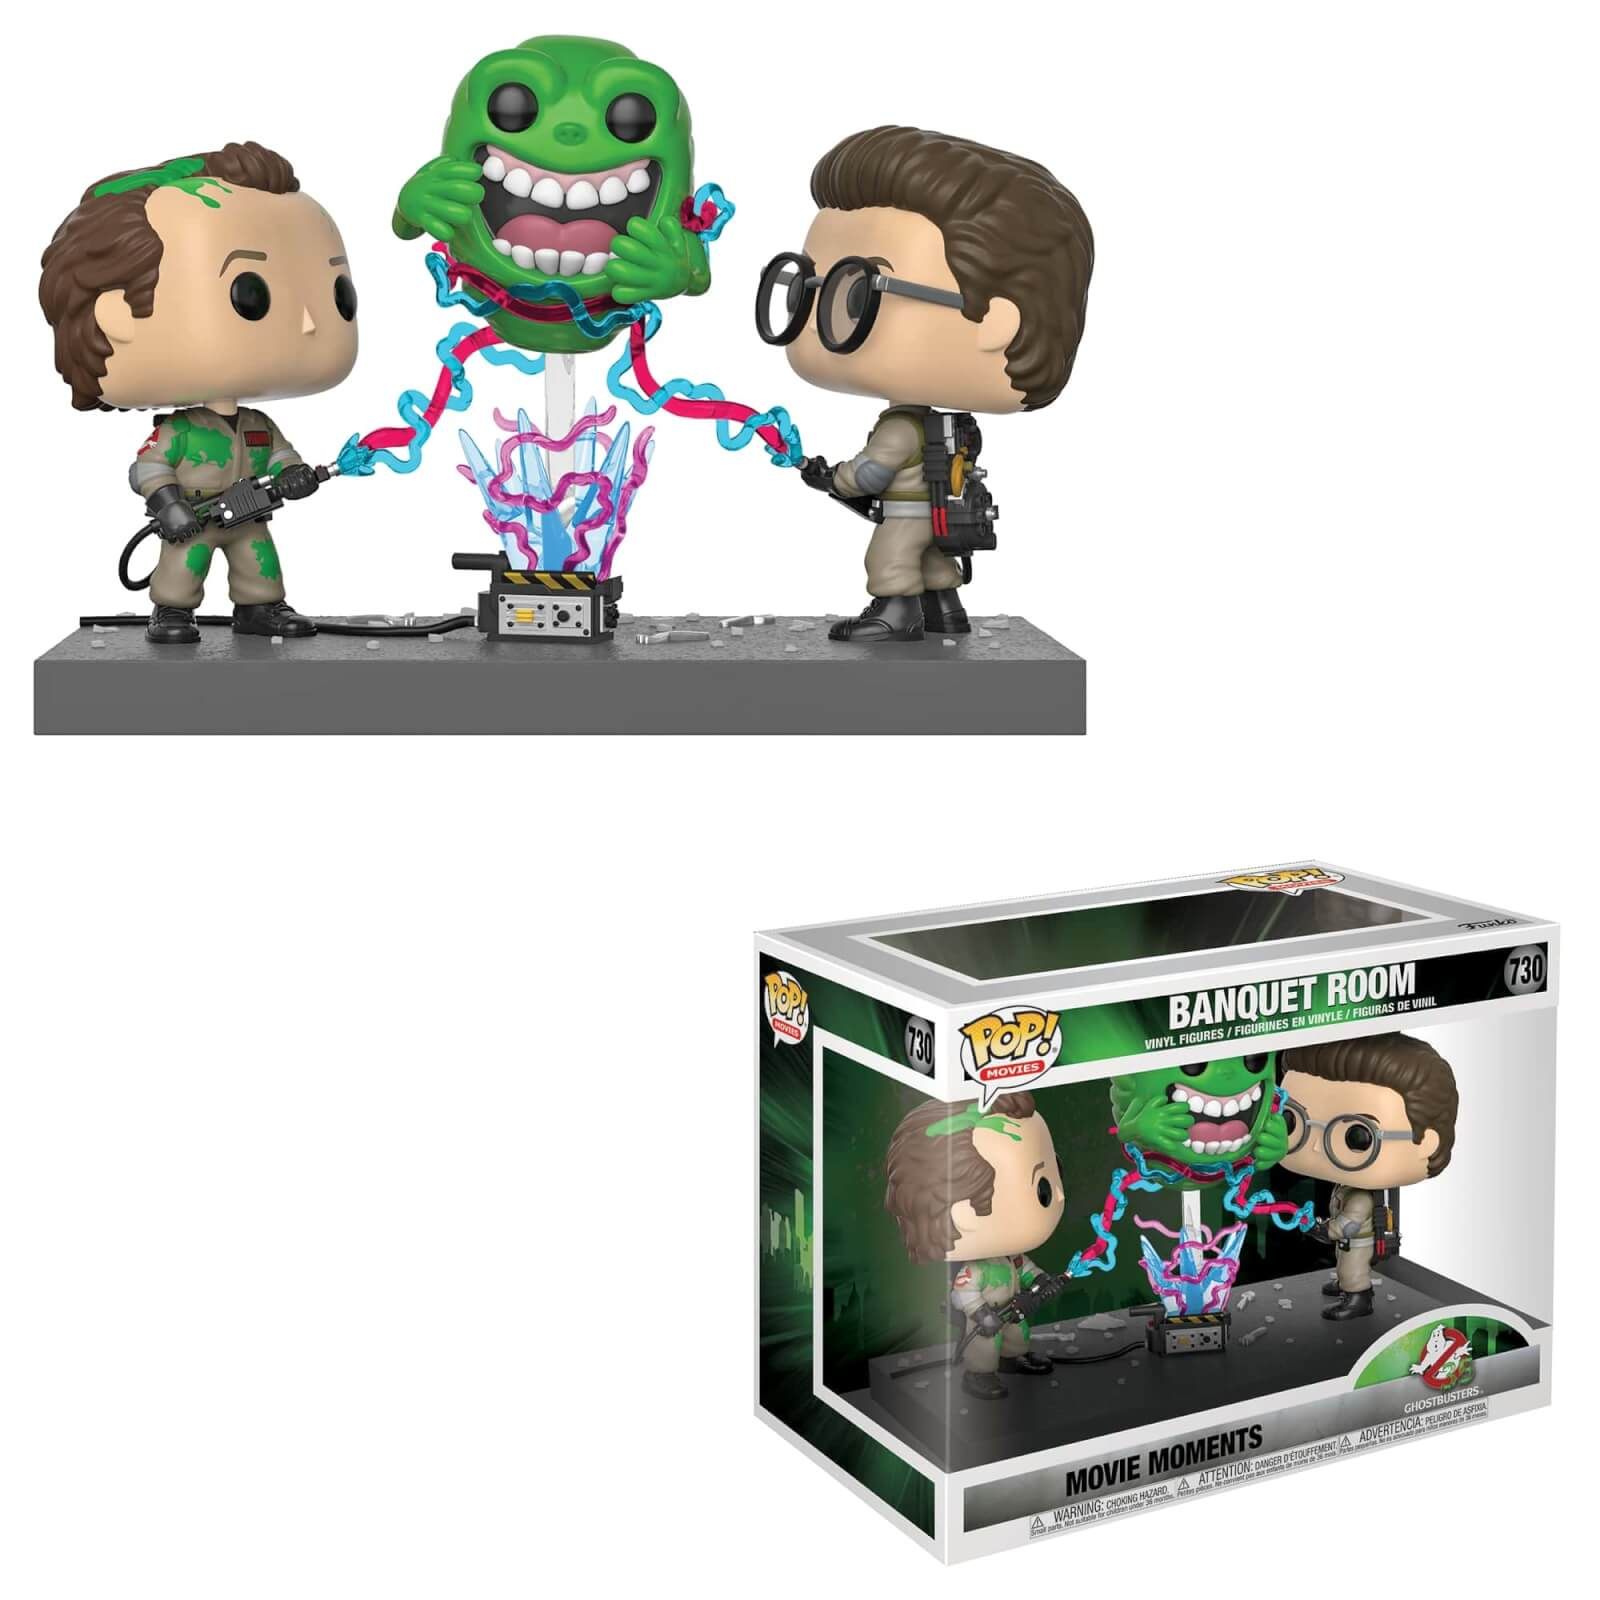 POP FUNKO - GHOSTBUSTERS MOMENTOS - BANQUETE ROOM